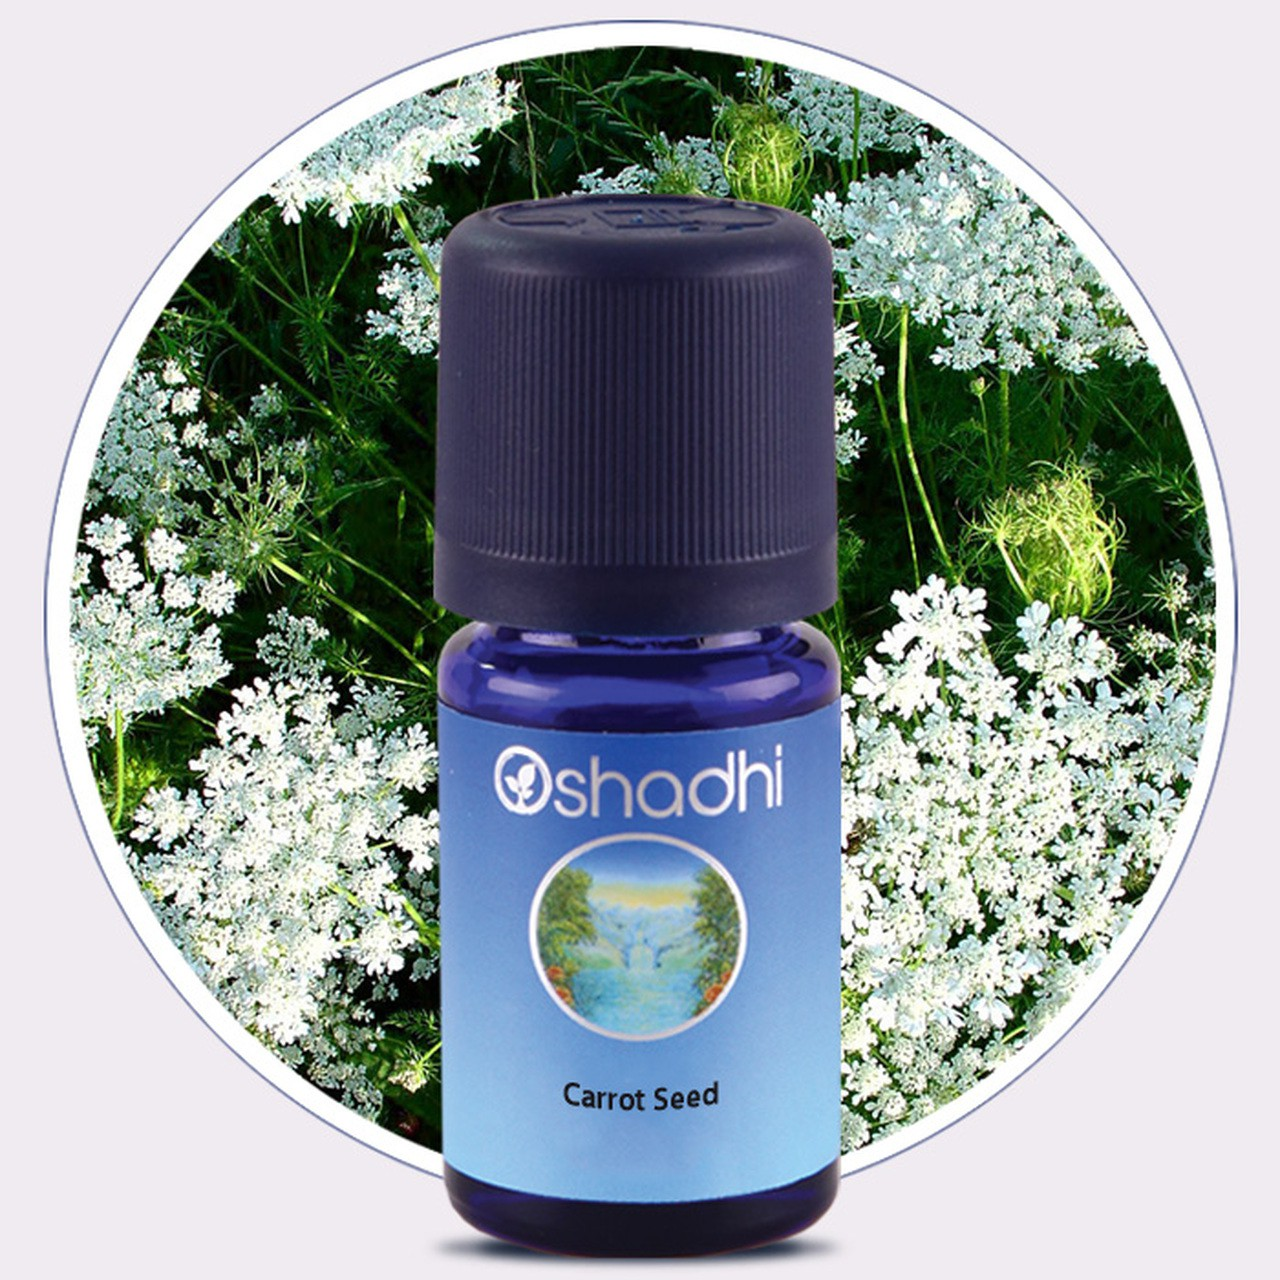 Carrot Seed (Oshadhi) 5ml